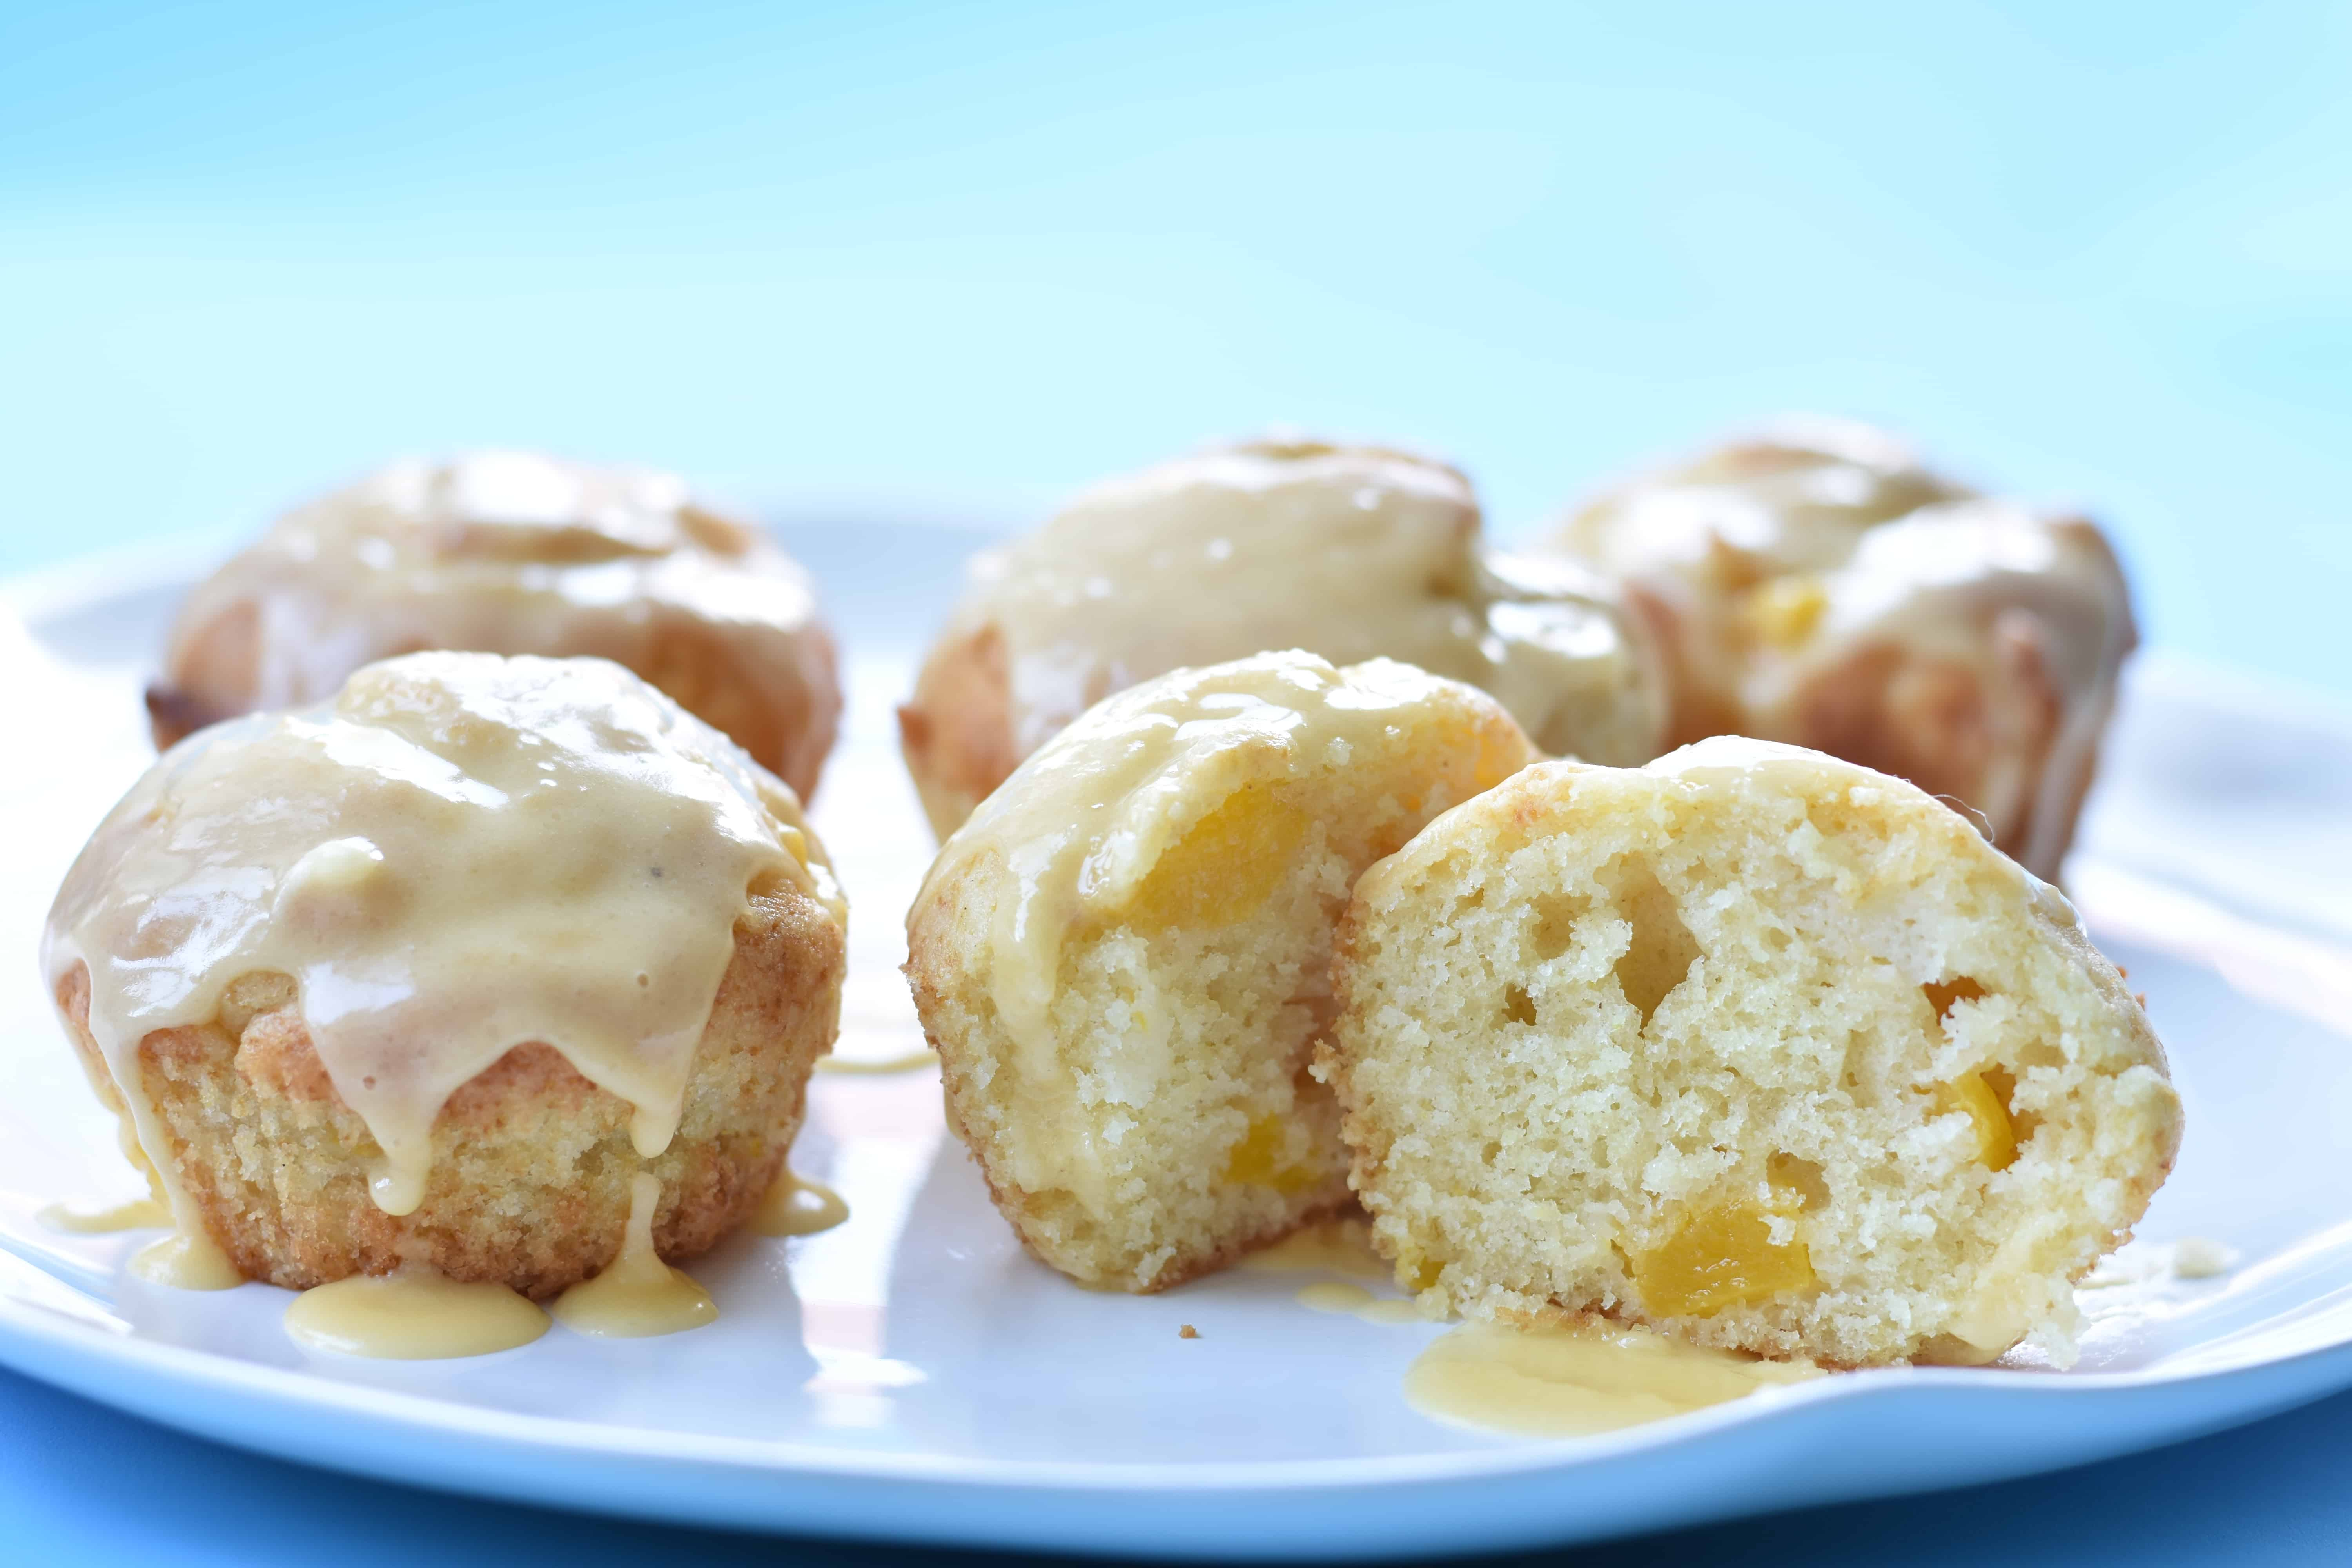 muffins with mango and maracuja